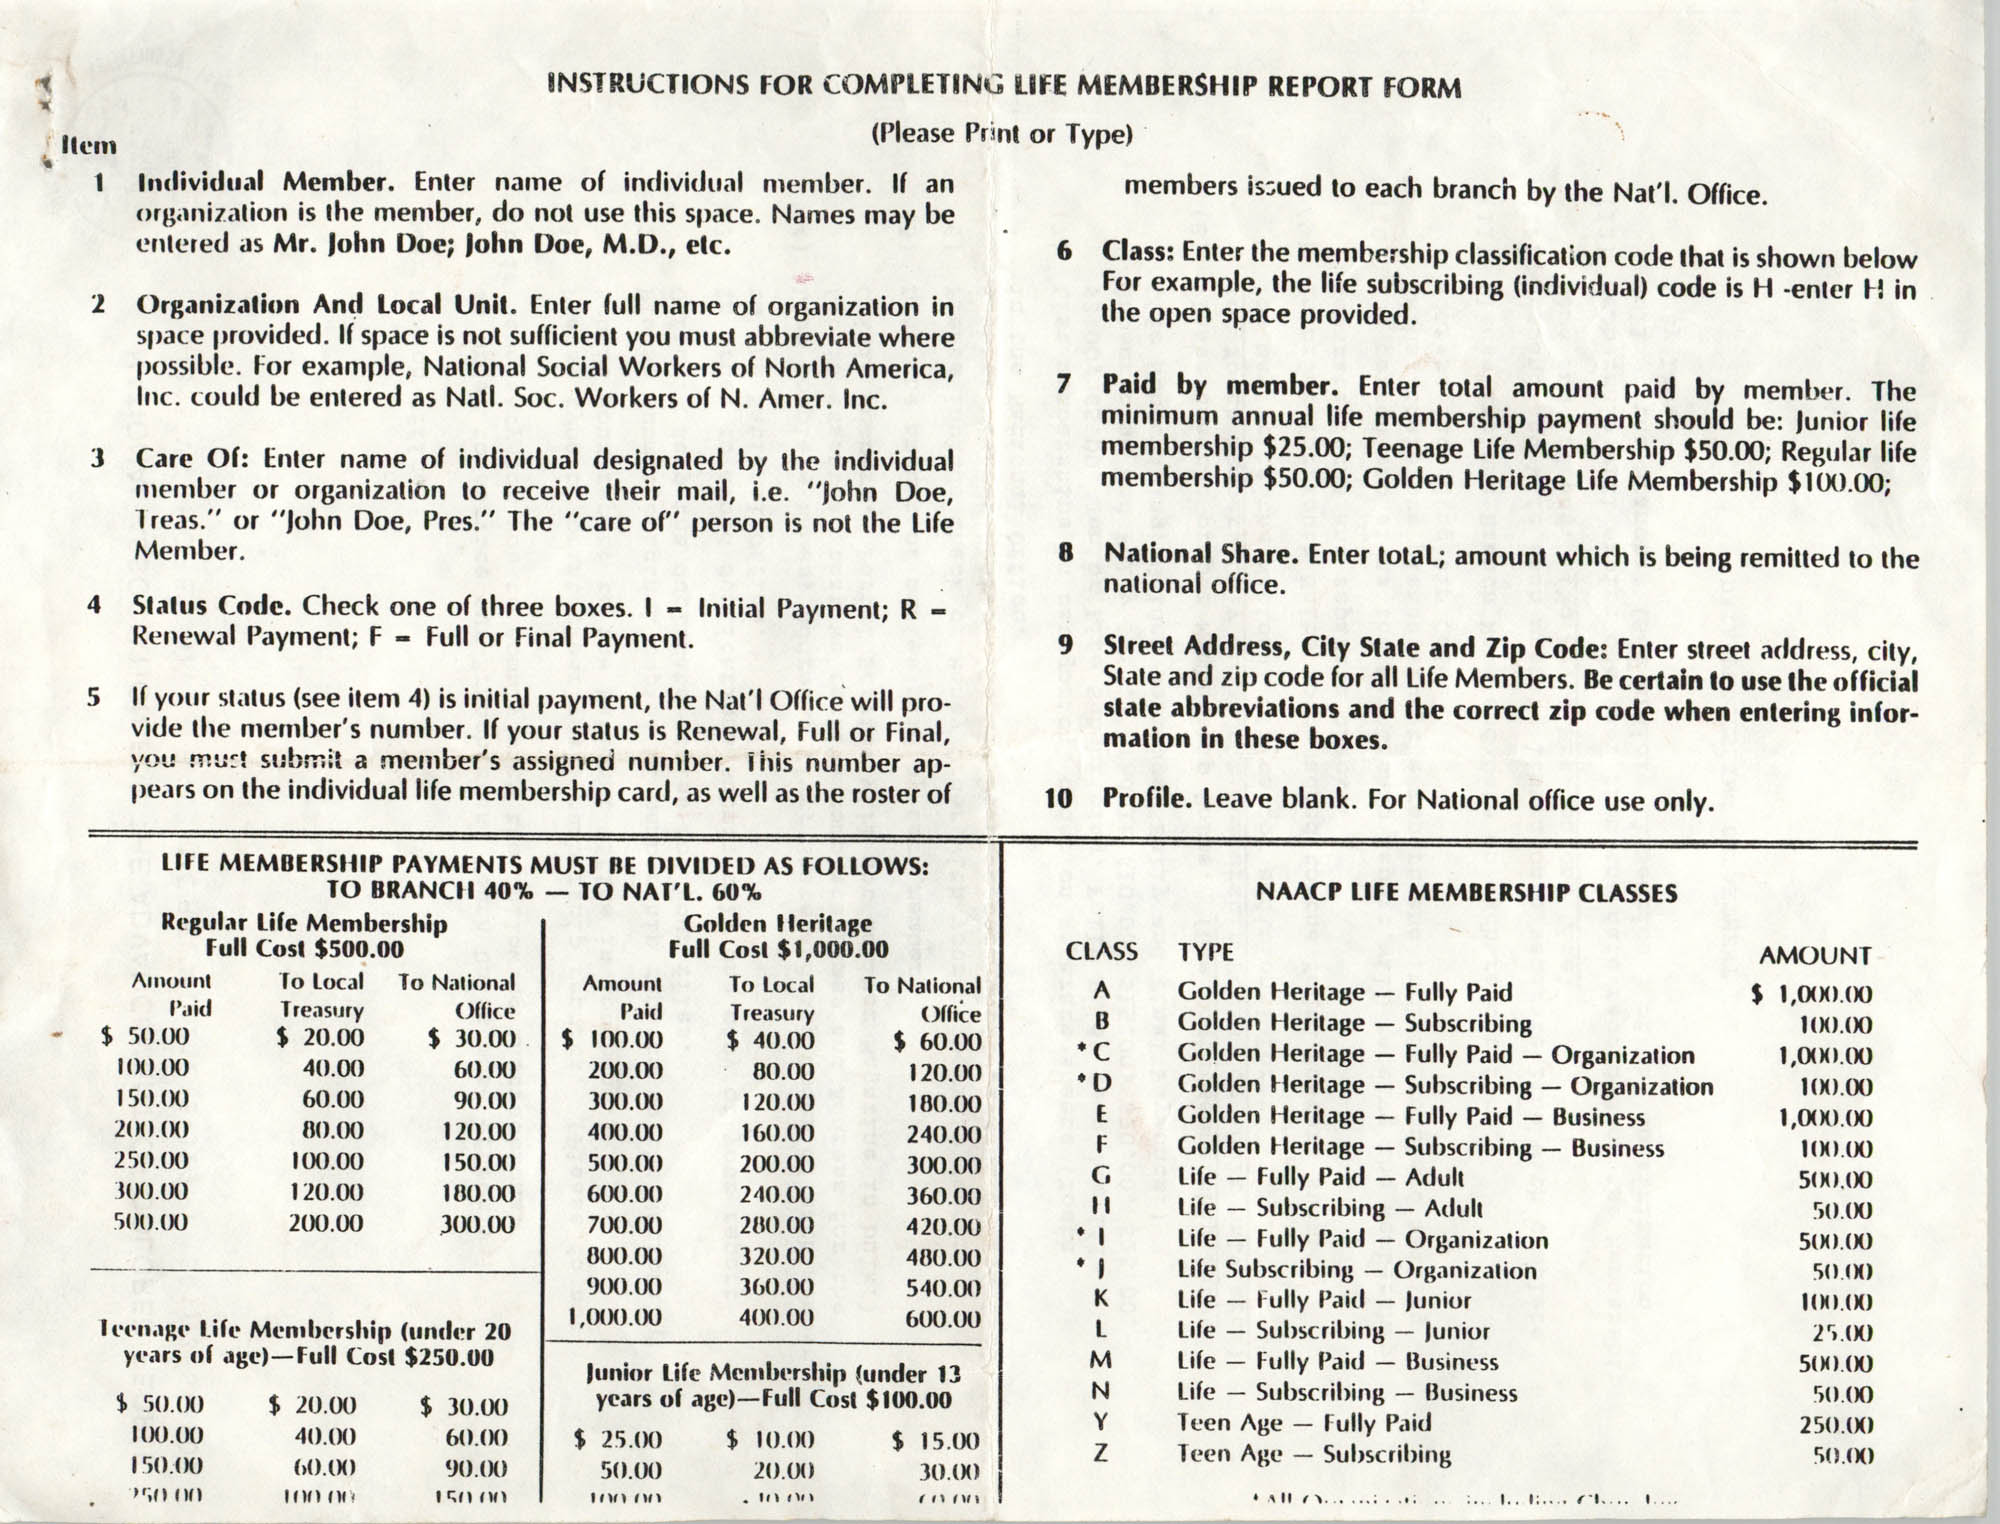 NAACP Life Membership Report Form, Instructions